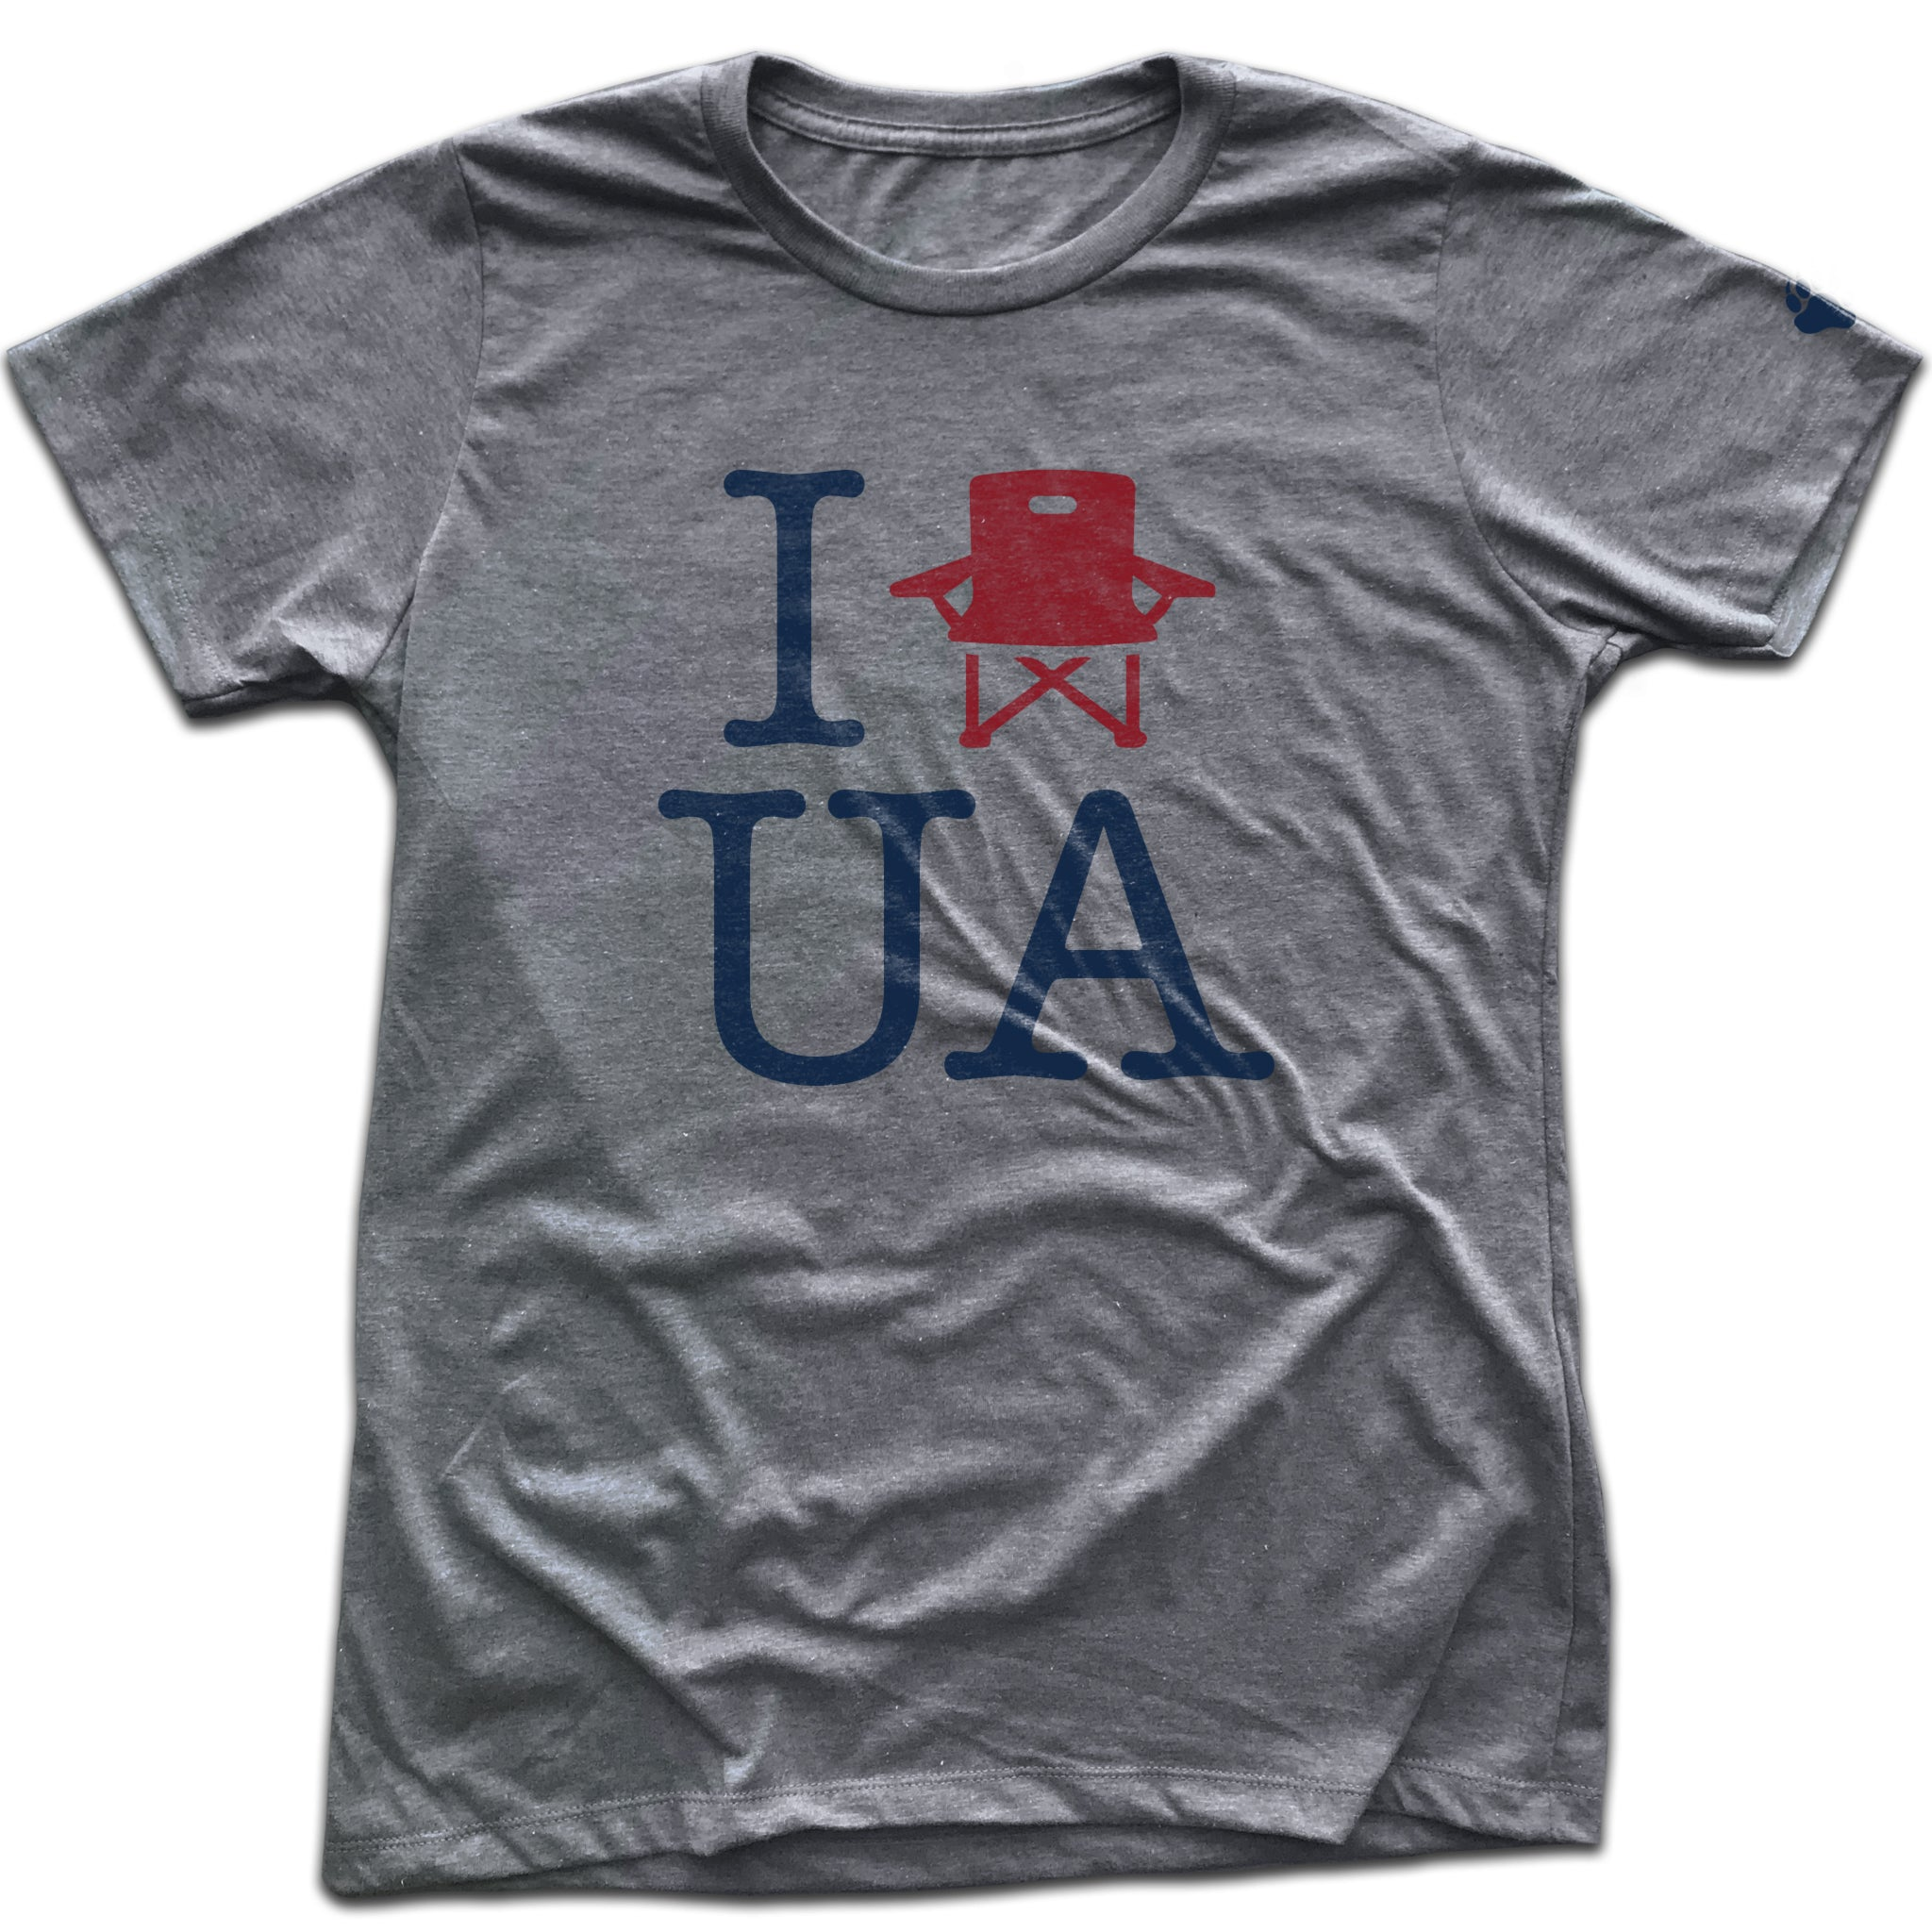 UA Outfitters - women's 'I lawnchair UA' Upper Arlington heather gray t shirt